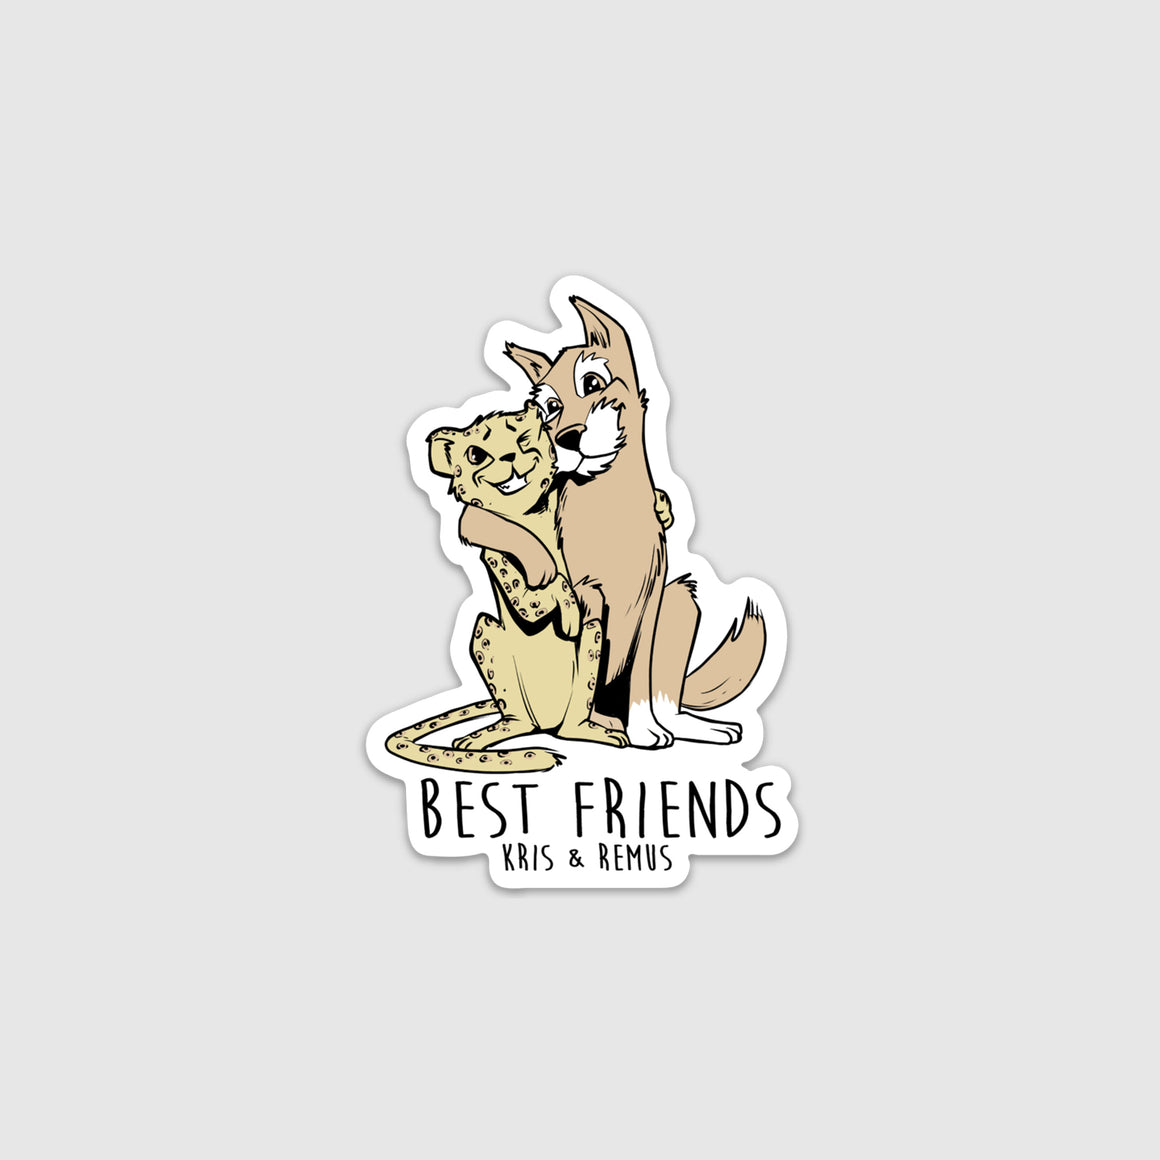 Kris & Remus Best Friends Sticker - Cincy Shirts